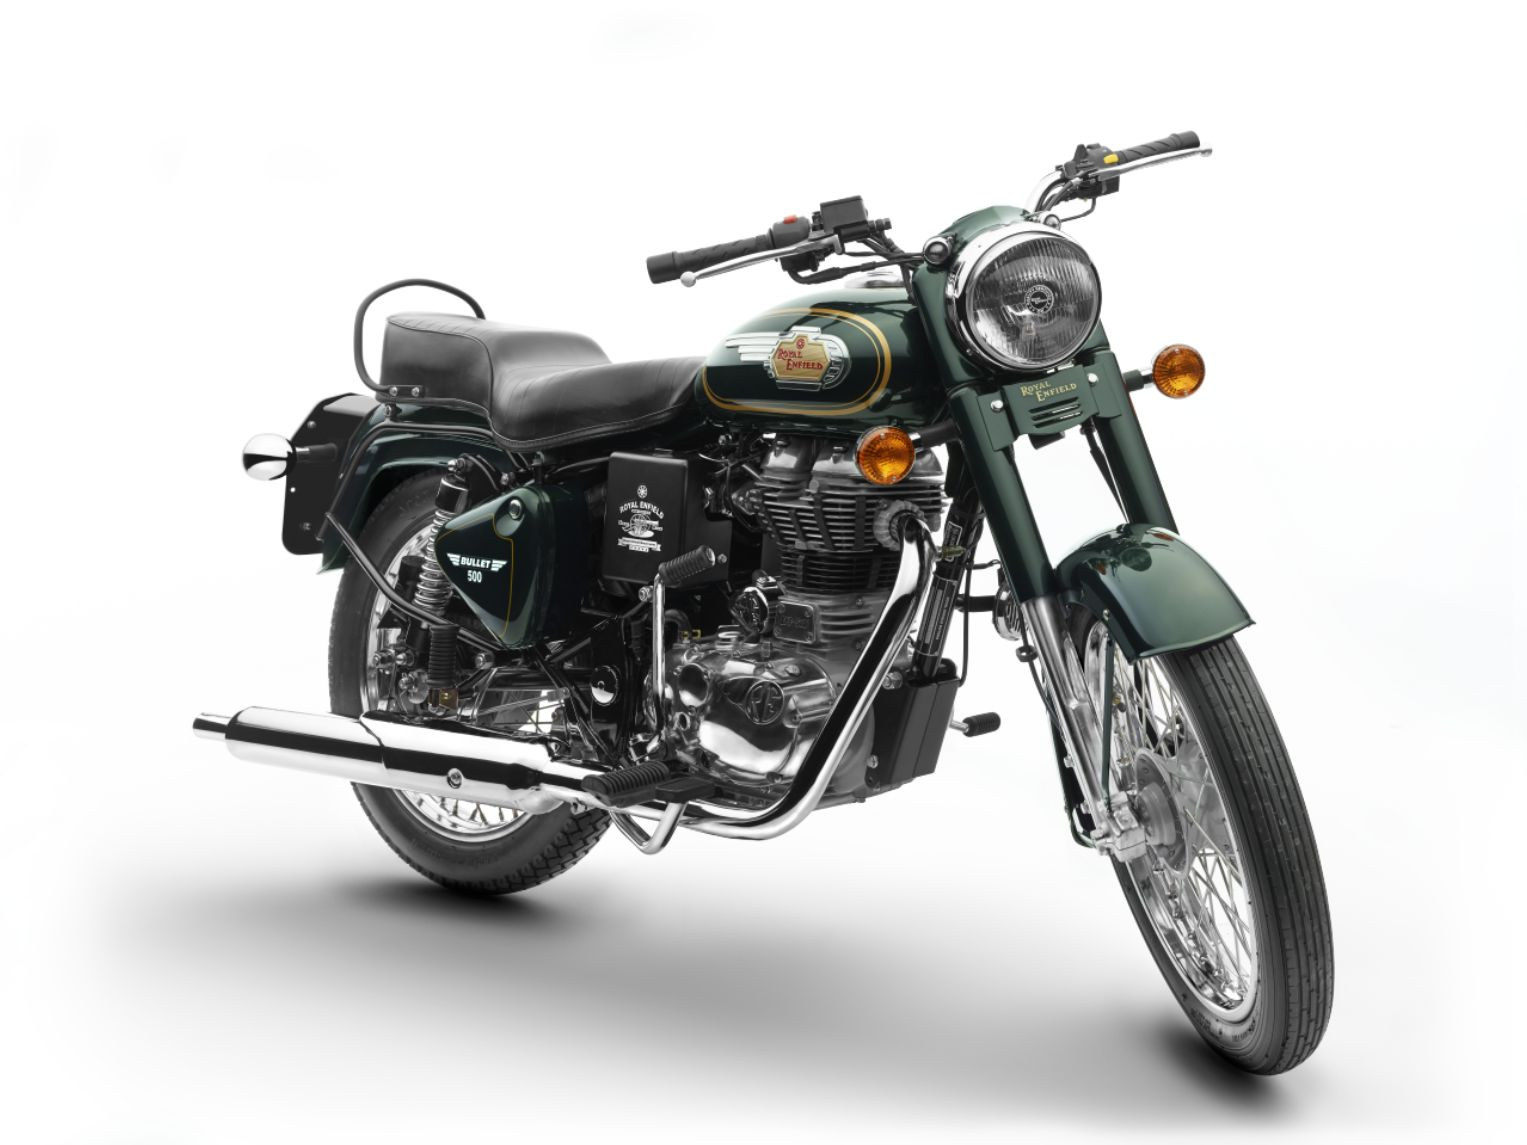 Royal Enfield Bullet 500 EFI STD - Entry Level